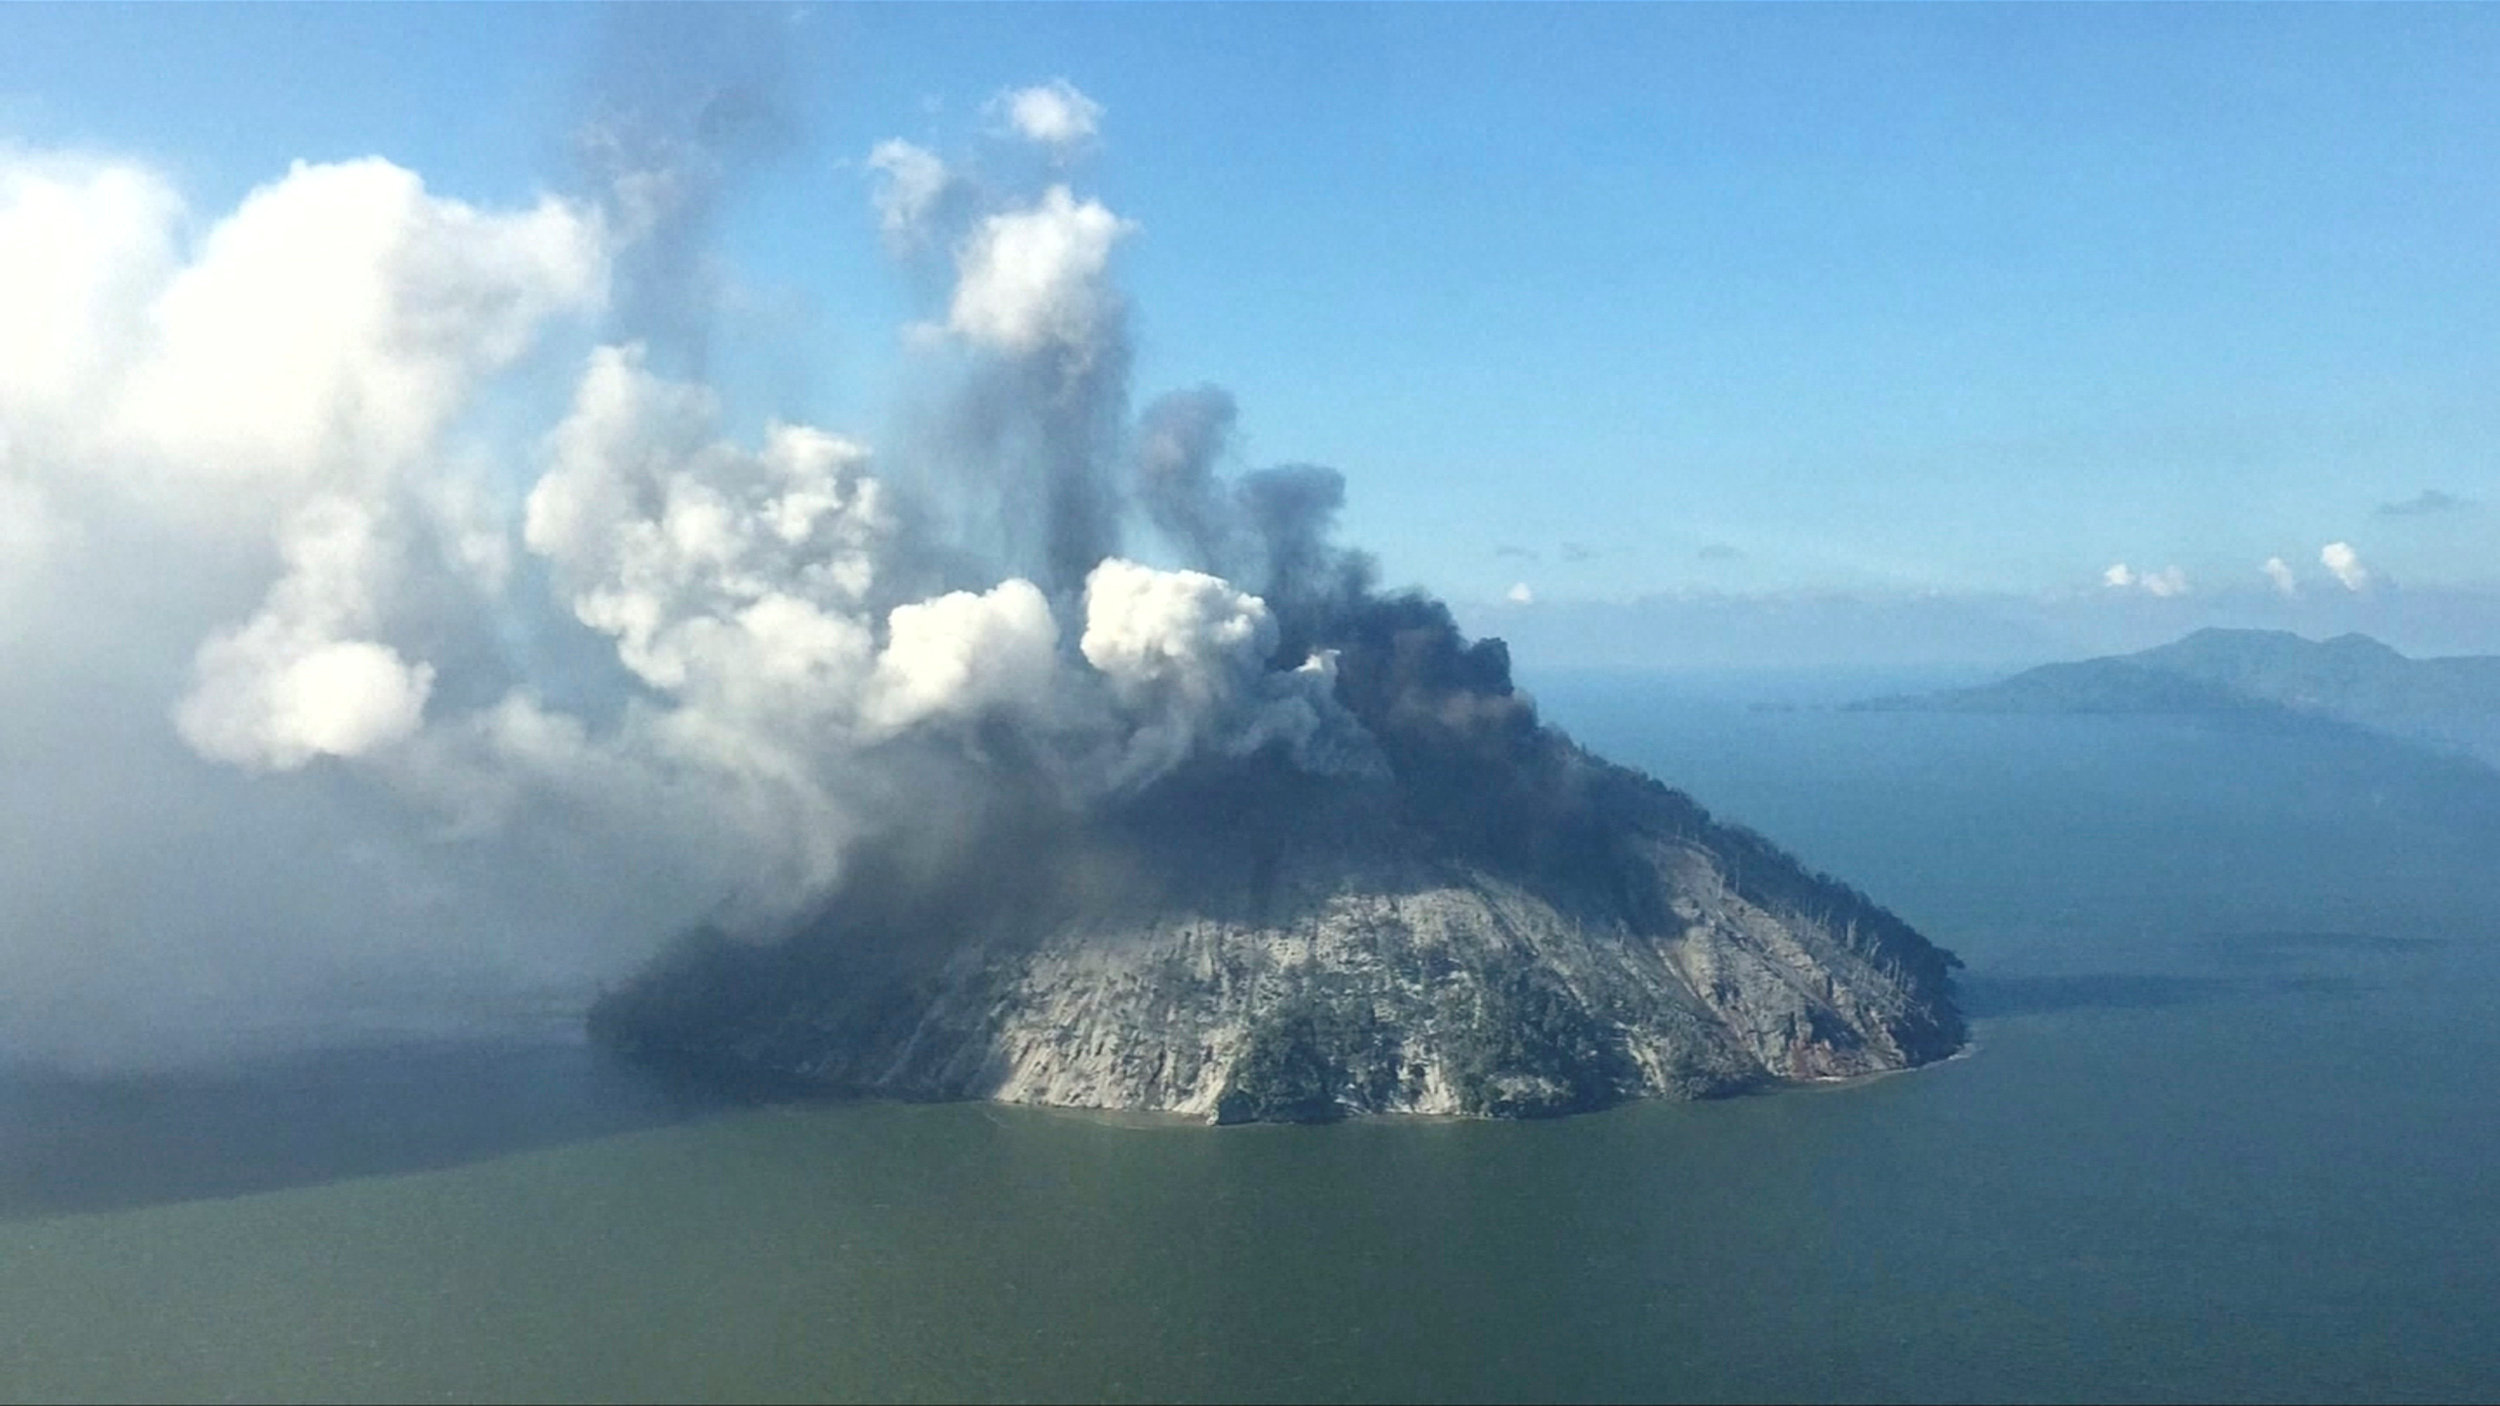 The remote island volcano of Kadovar spews ash into the sky in Papua New Guinea, January 6, 2018. SAMARITAN AVIATION/via REUTERS